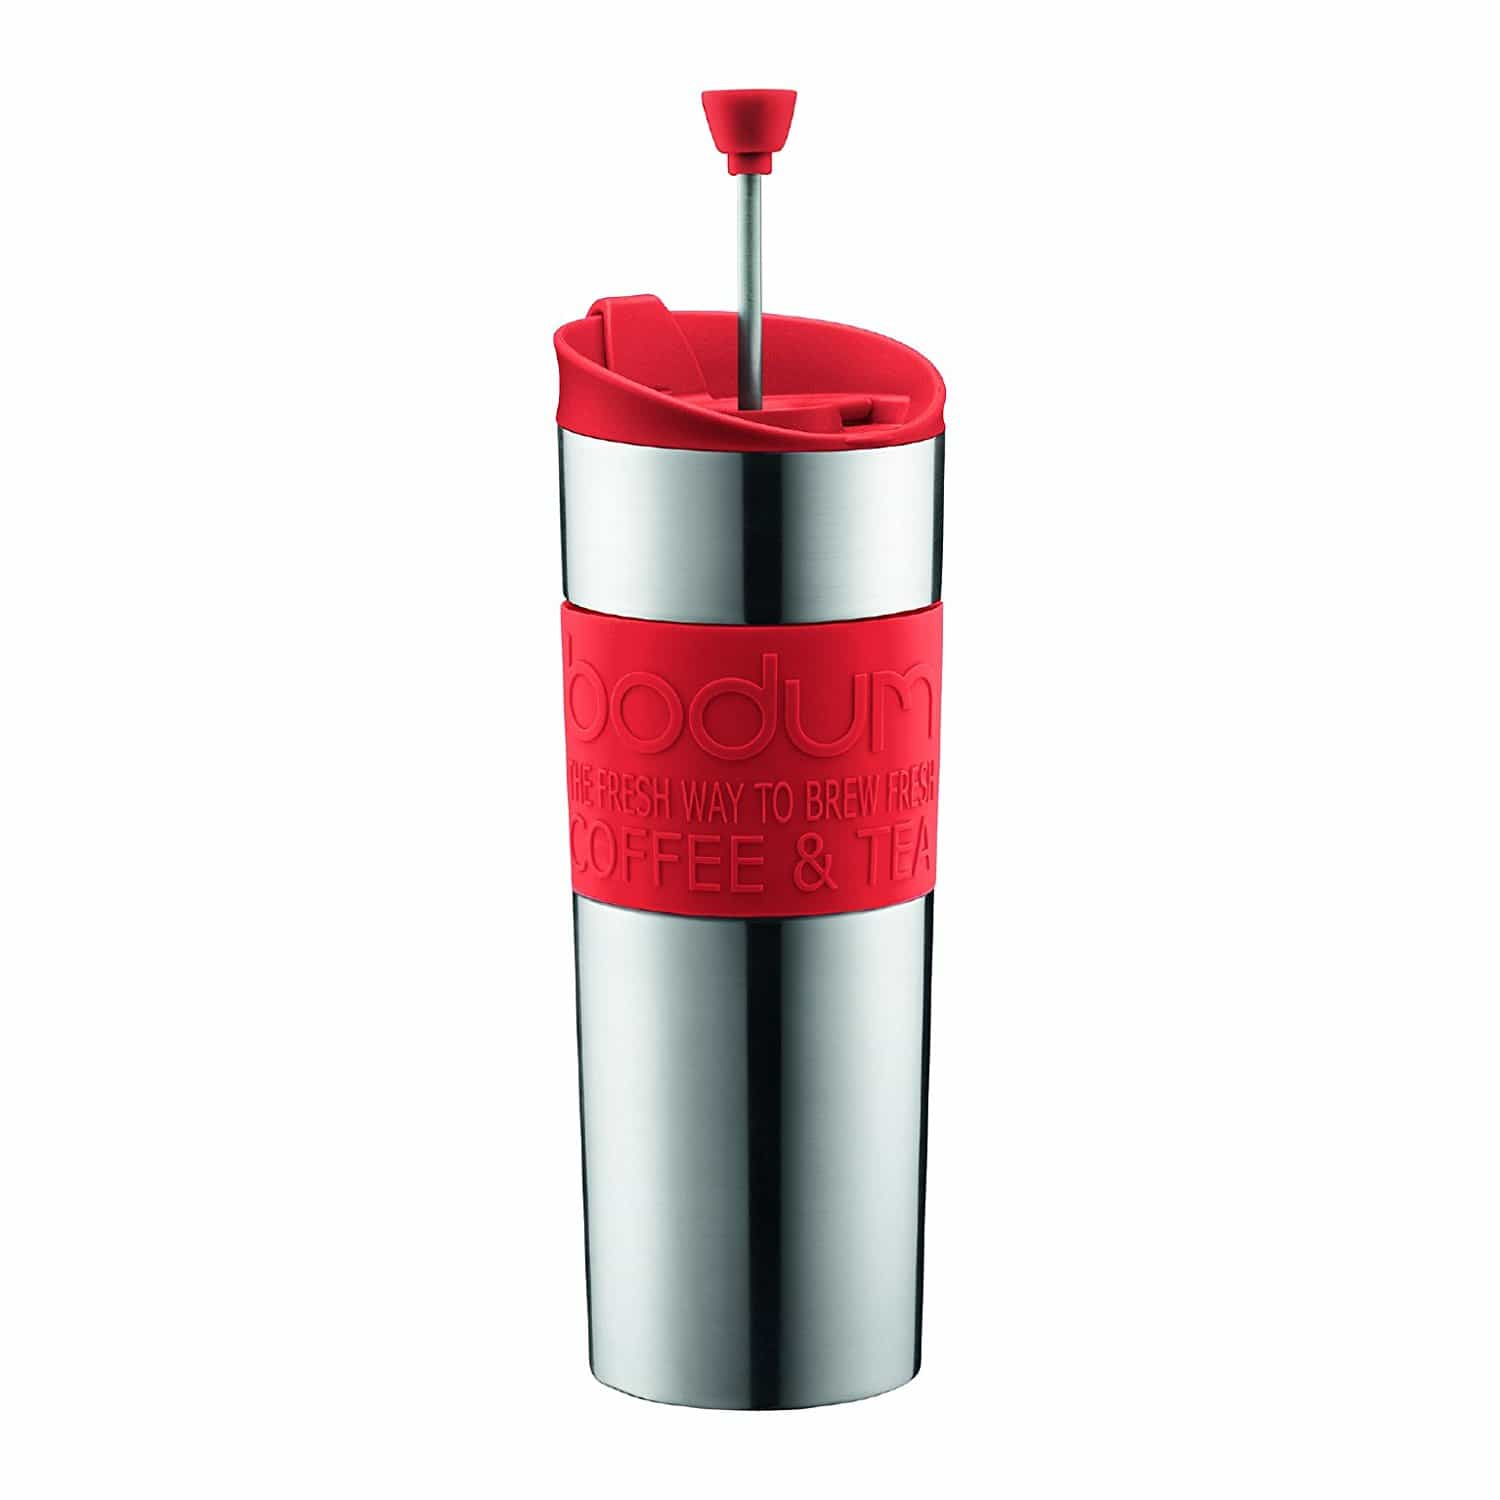 travel mug that keeps coffee hot the longest